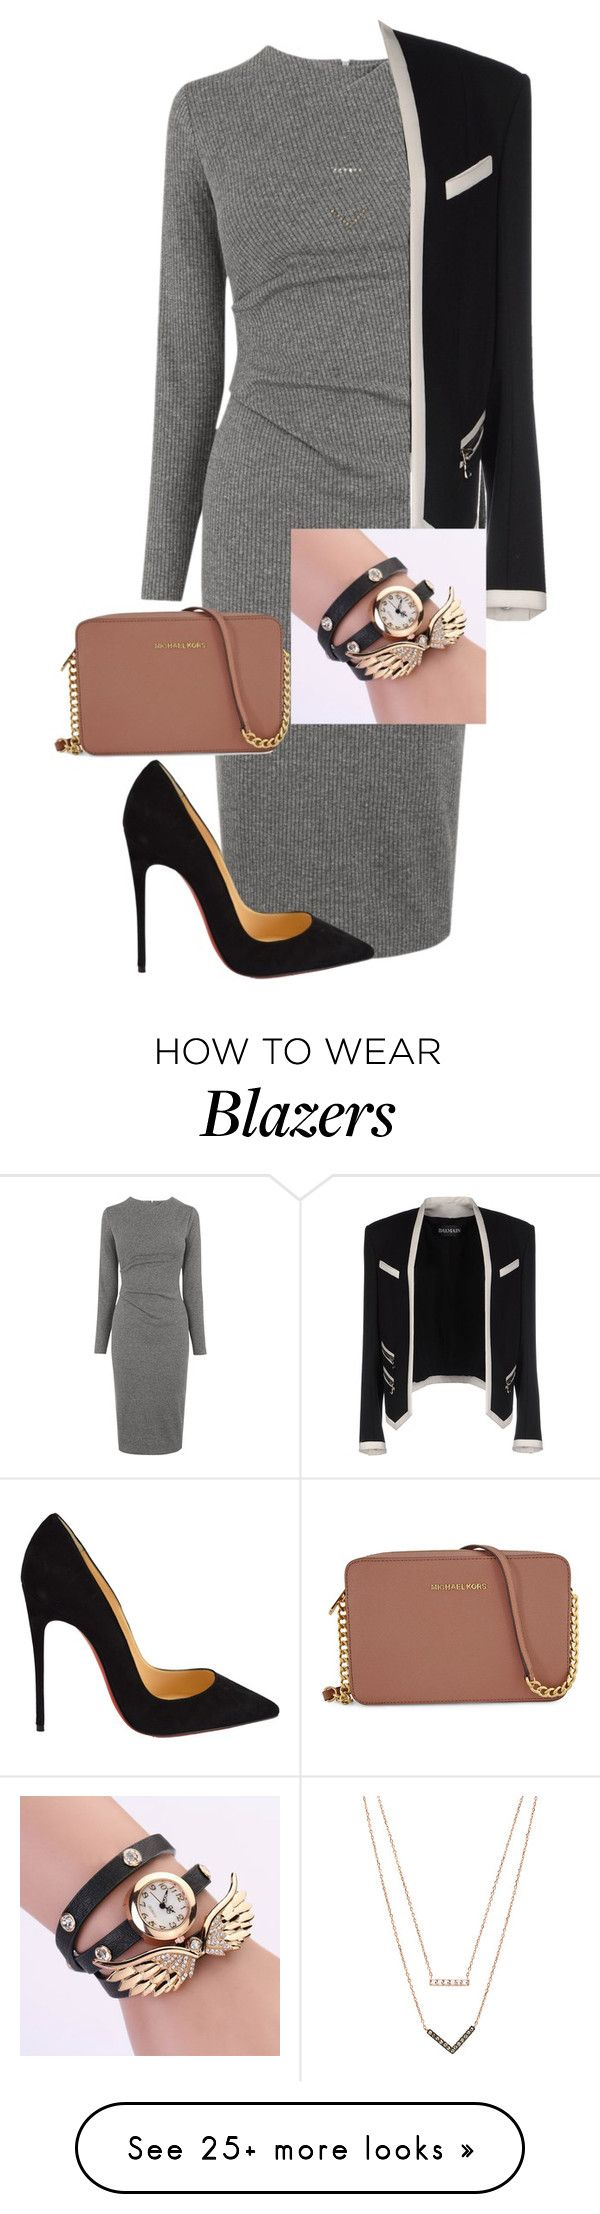 """Untitled #374"" by samson-90 on Polyvore featuring Whistles, Christian Louboutin, Balmain, Michael Kors, women's clothing, women's fashion, women, female, woman and misses"